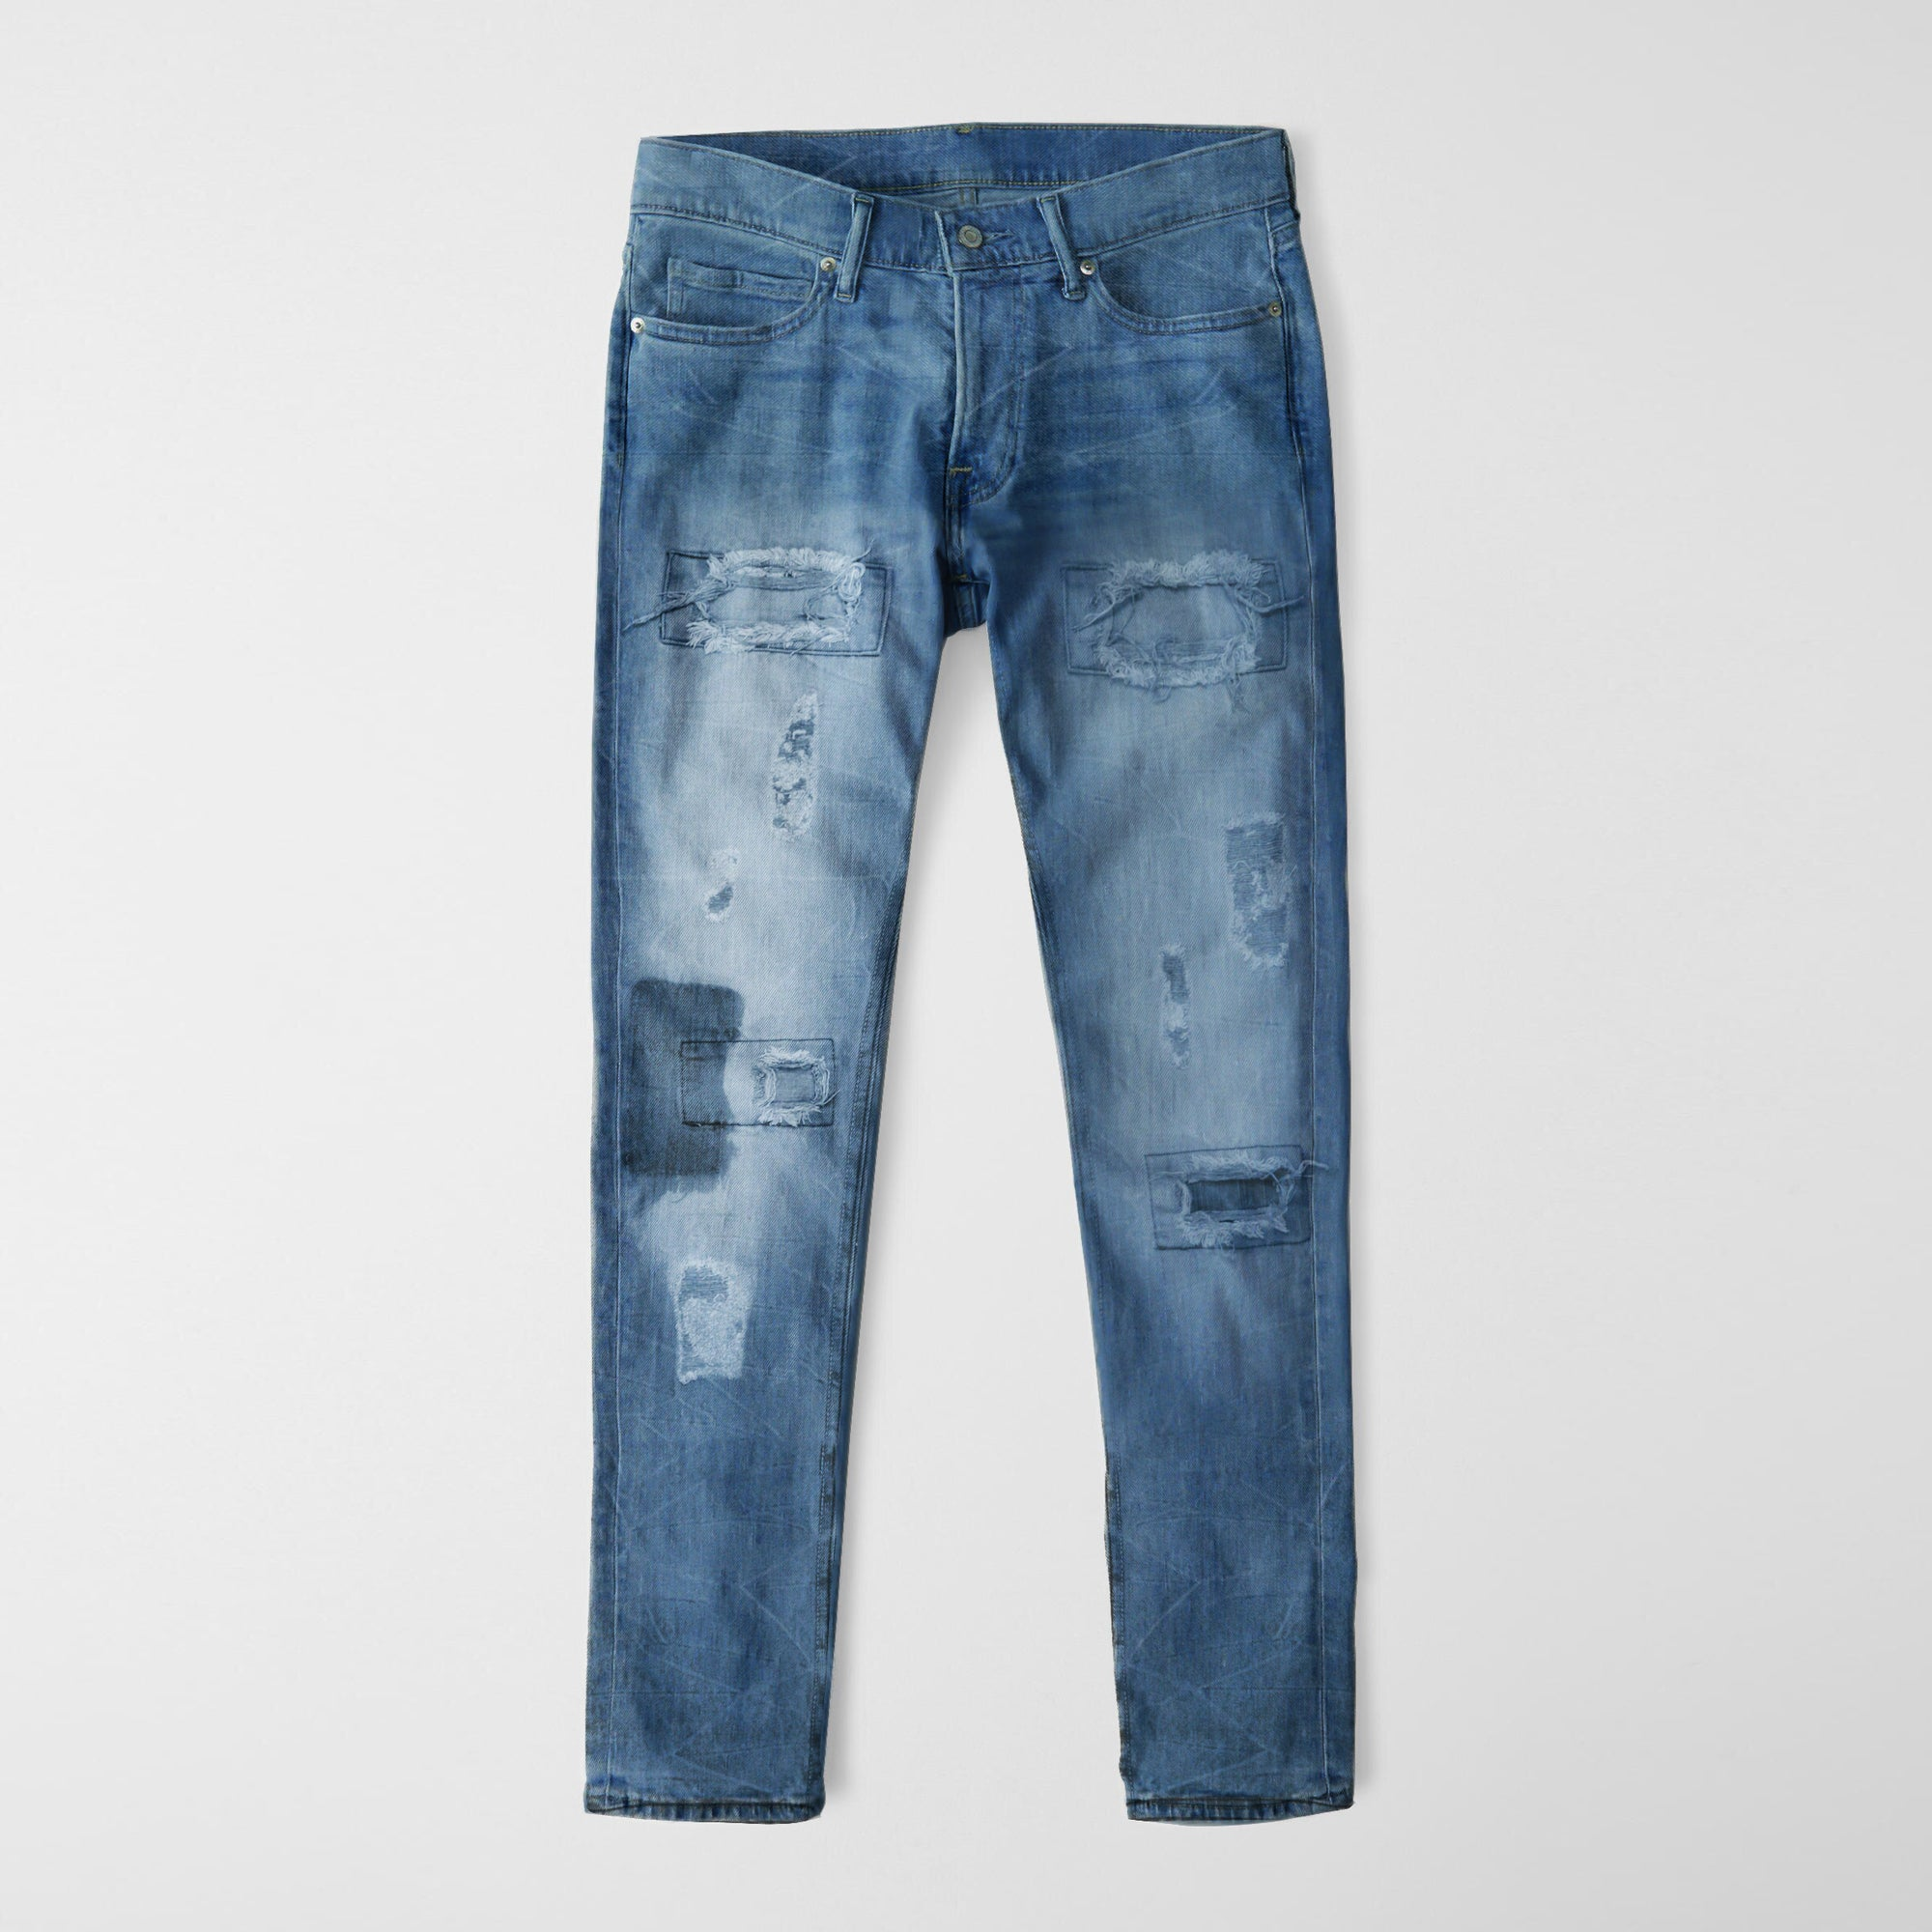 Nancy &Denim Cropped Slim Fit Non Stretch Grinded Denim For Men-(S29)-Blue Faded & Grinded-NA9412